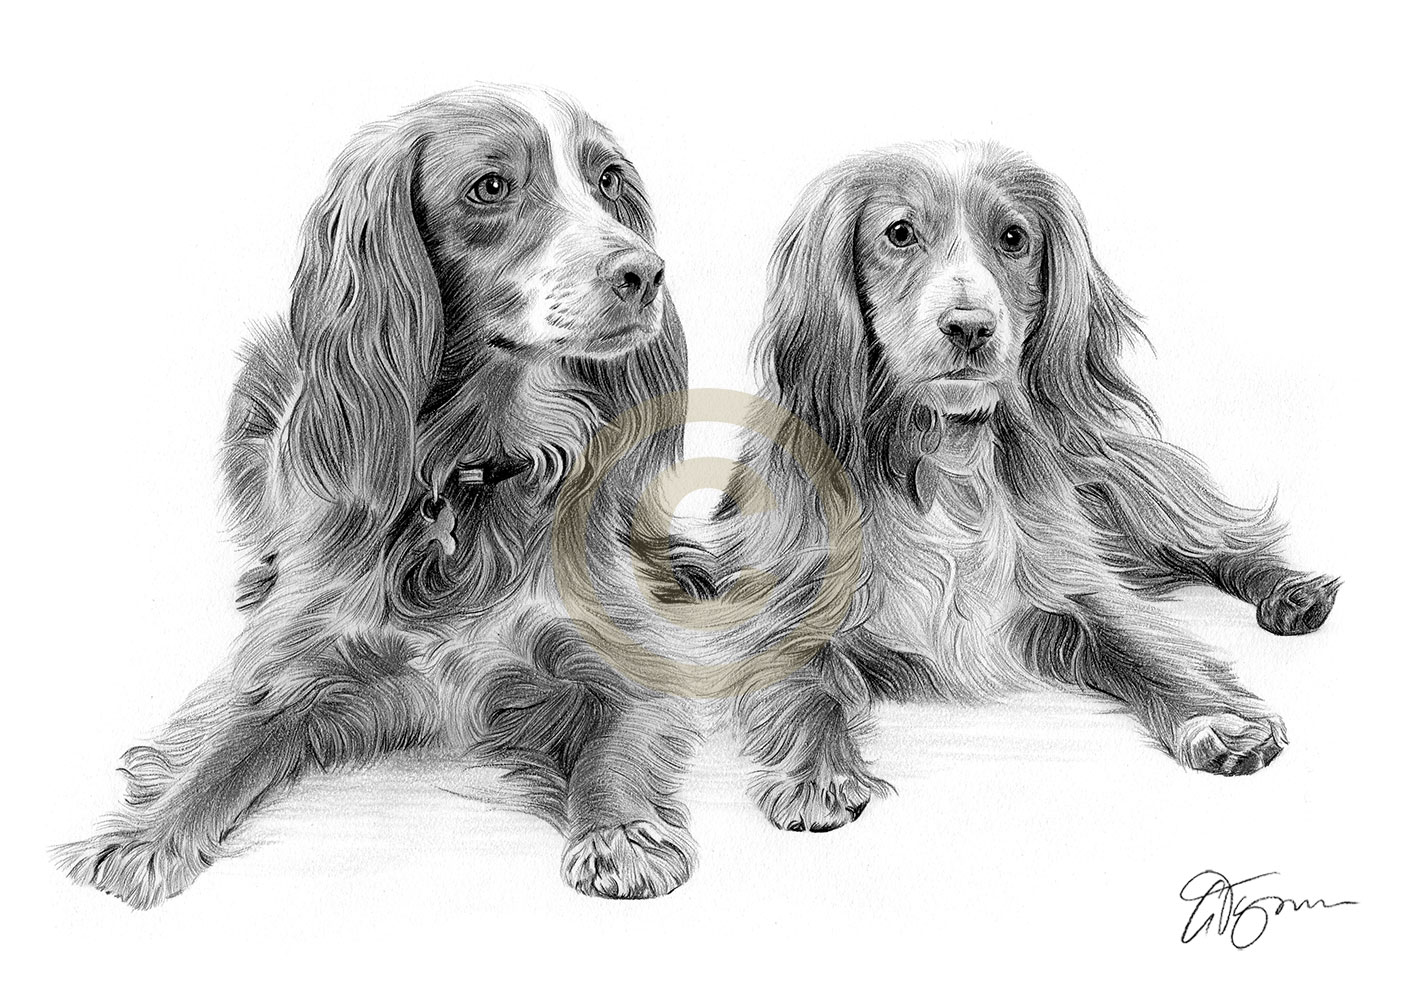 Pencil drawing commission of two spaniels by artist Gary Tymon